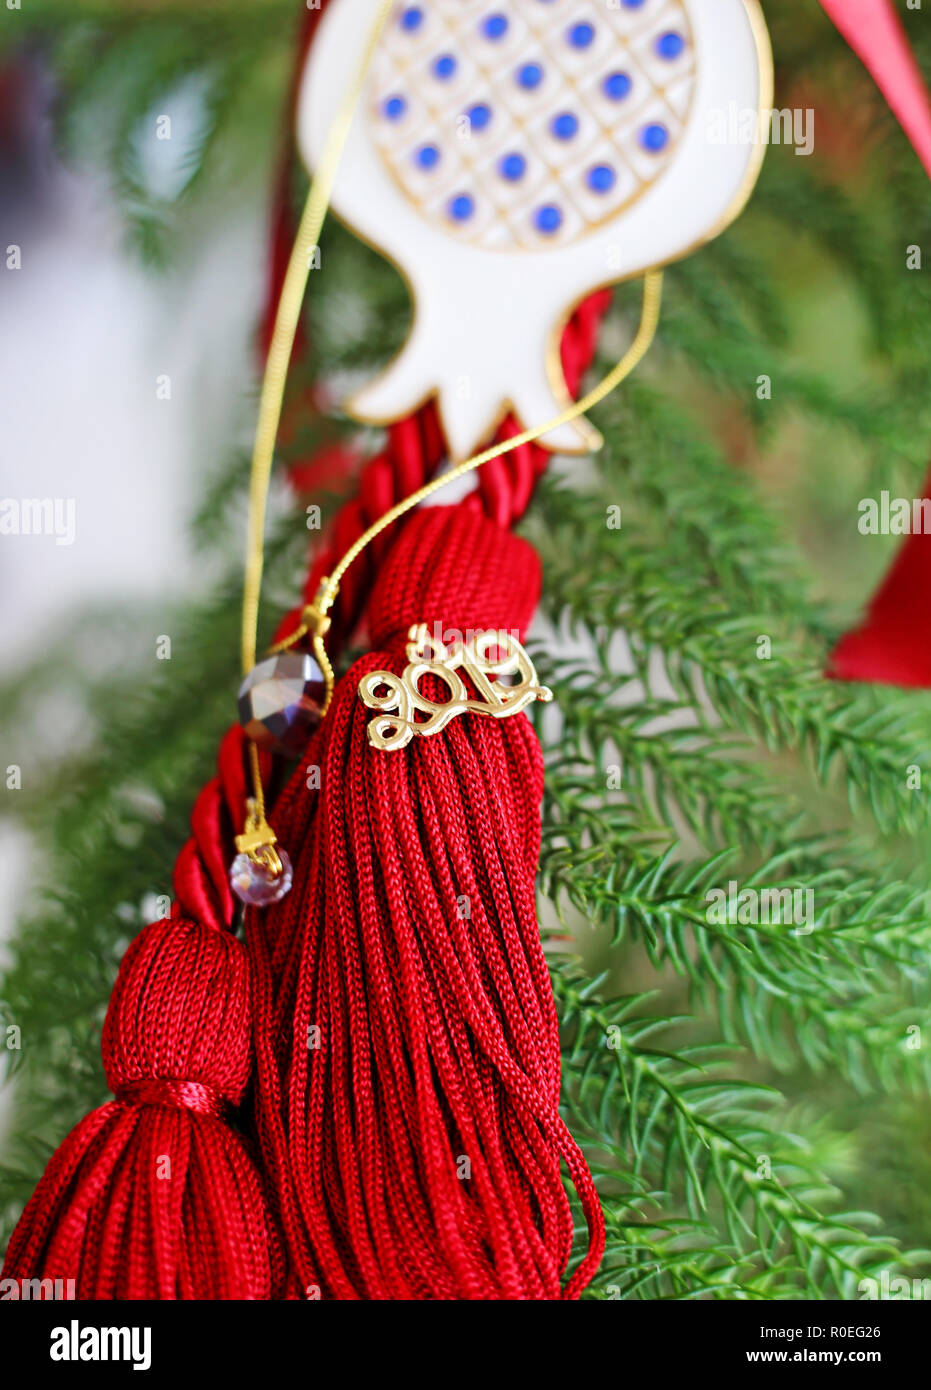 Christmas Home Decor 2019.Decorative 2019 Ornament With Red Ribbons And Lucky